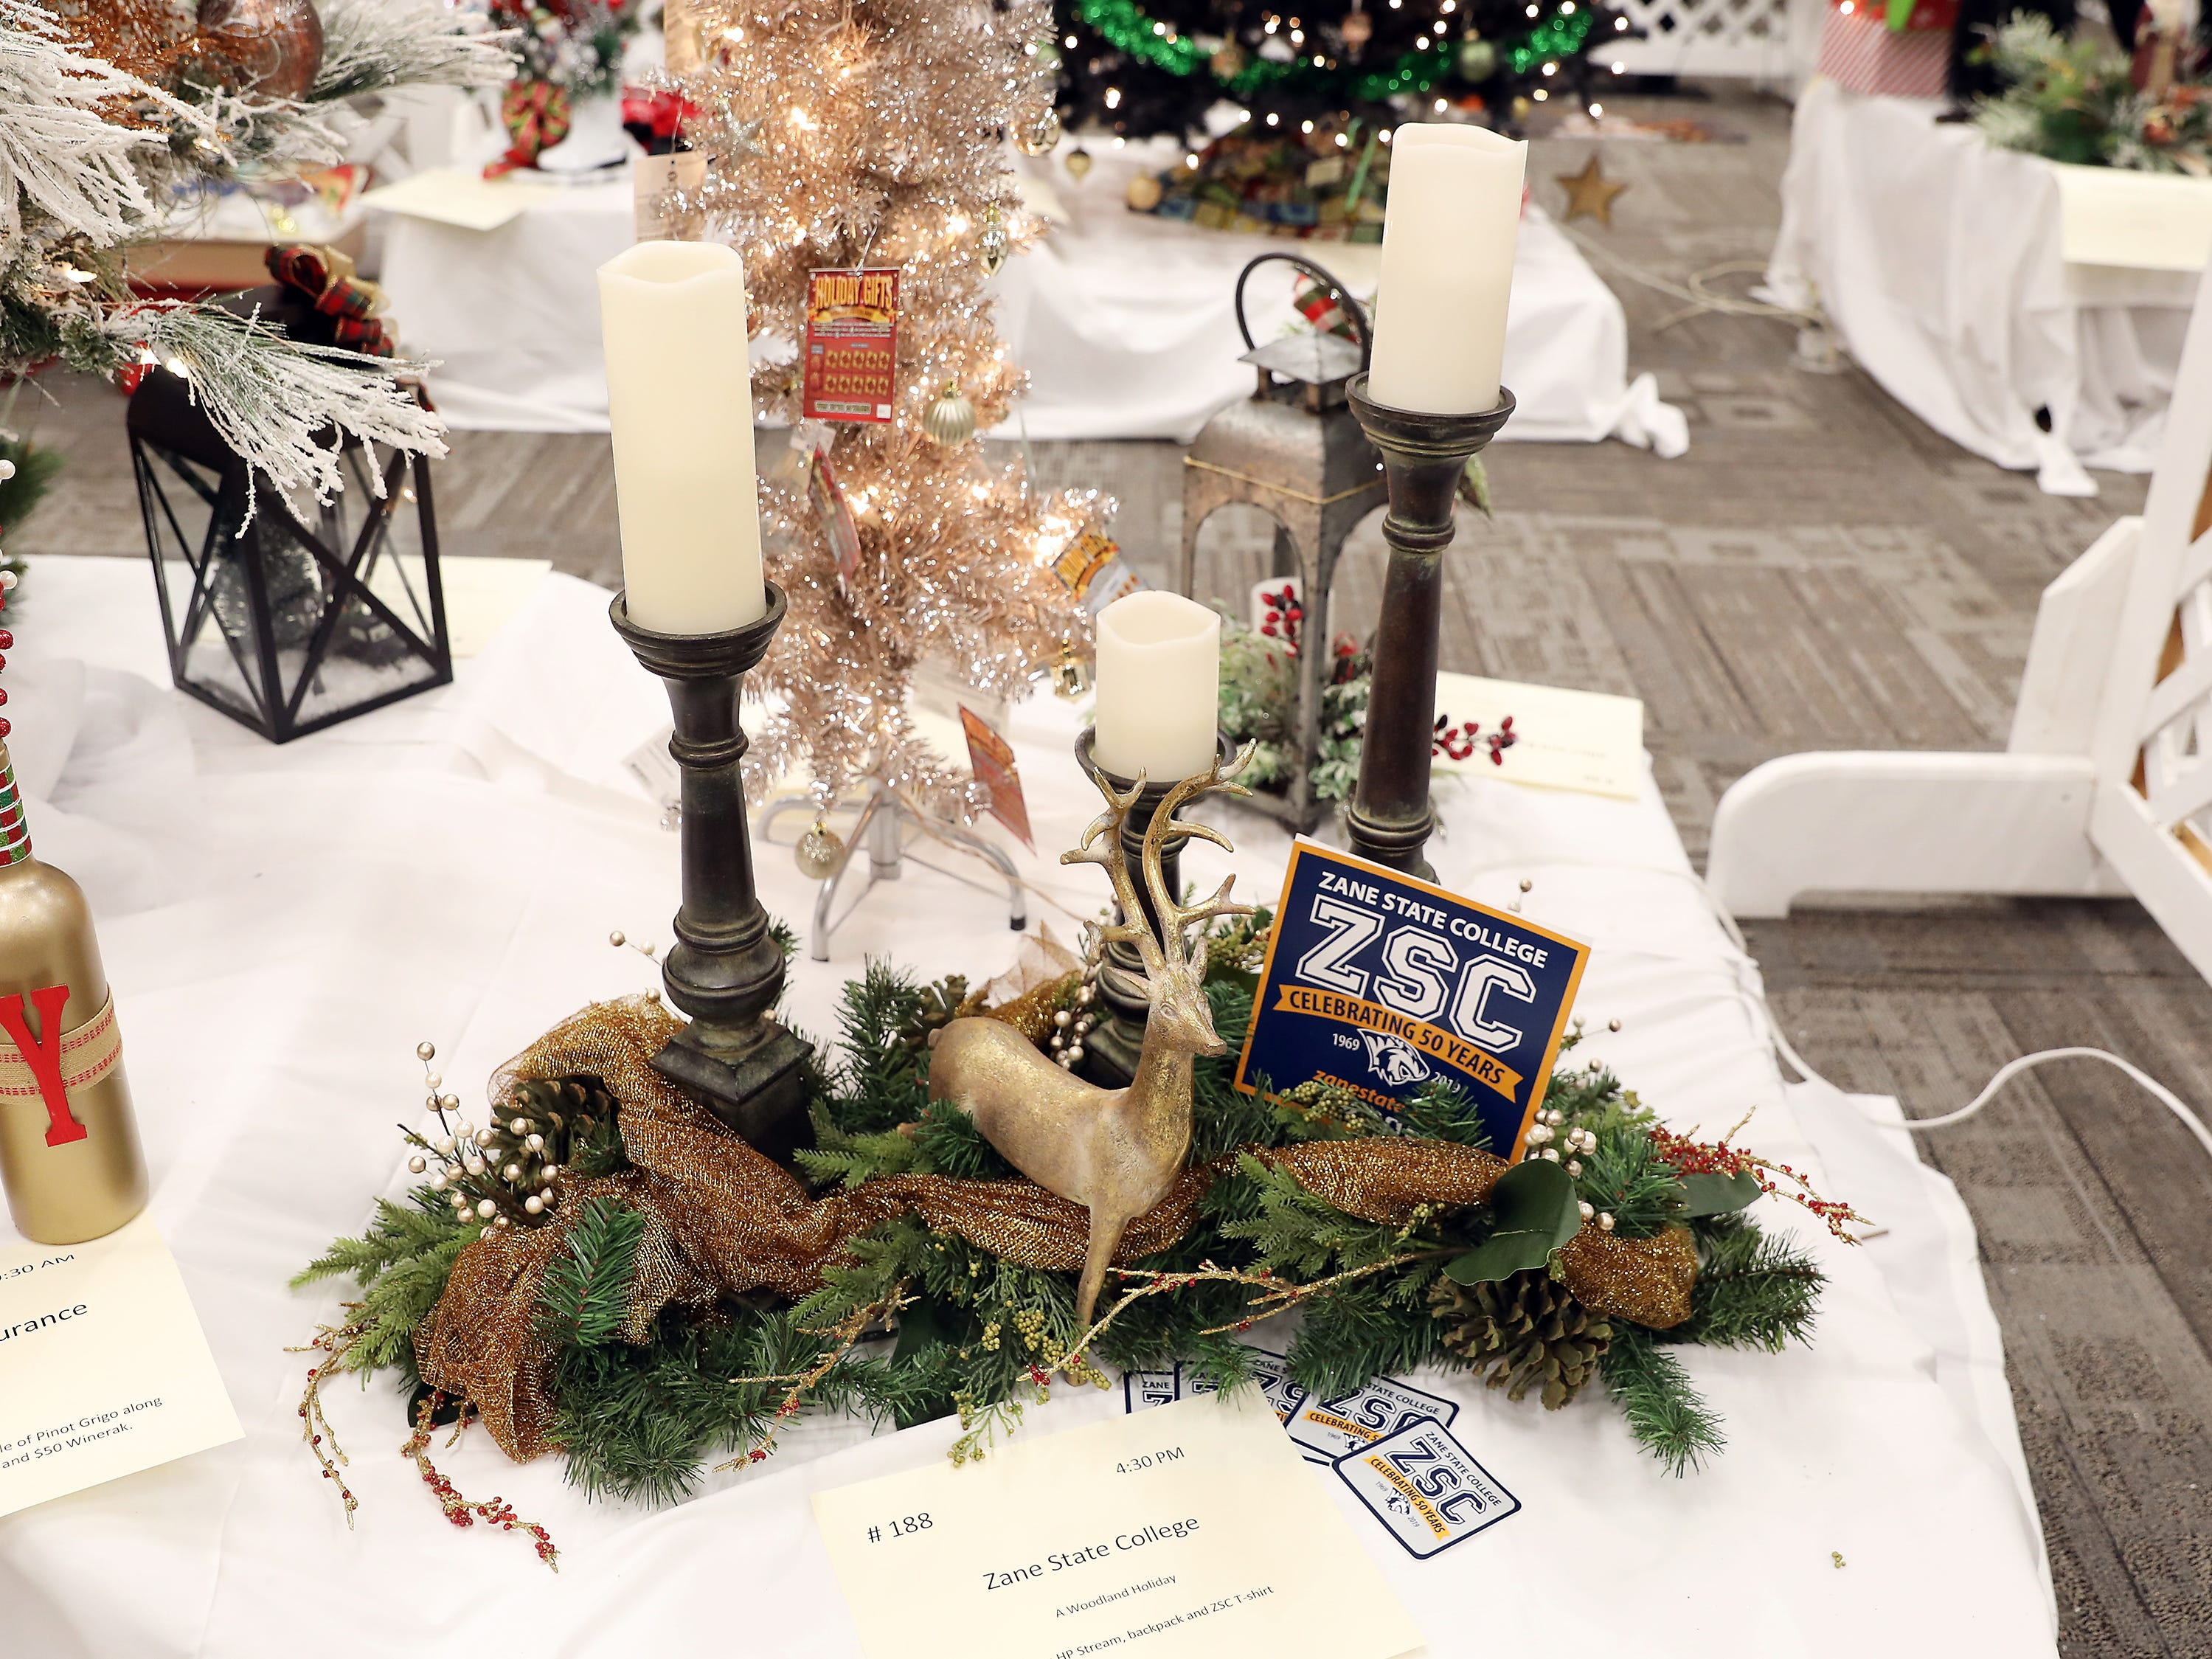 1884:30 PMZane State CollegeCenterpieceA Woodland HolidayBeautiful centerpiece for your holiday table.  Includes three tiered candlesticks, remote control candles, pine garland and bronze deer.HP Stream, backpack and ZSC T-shirt